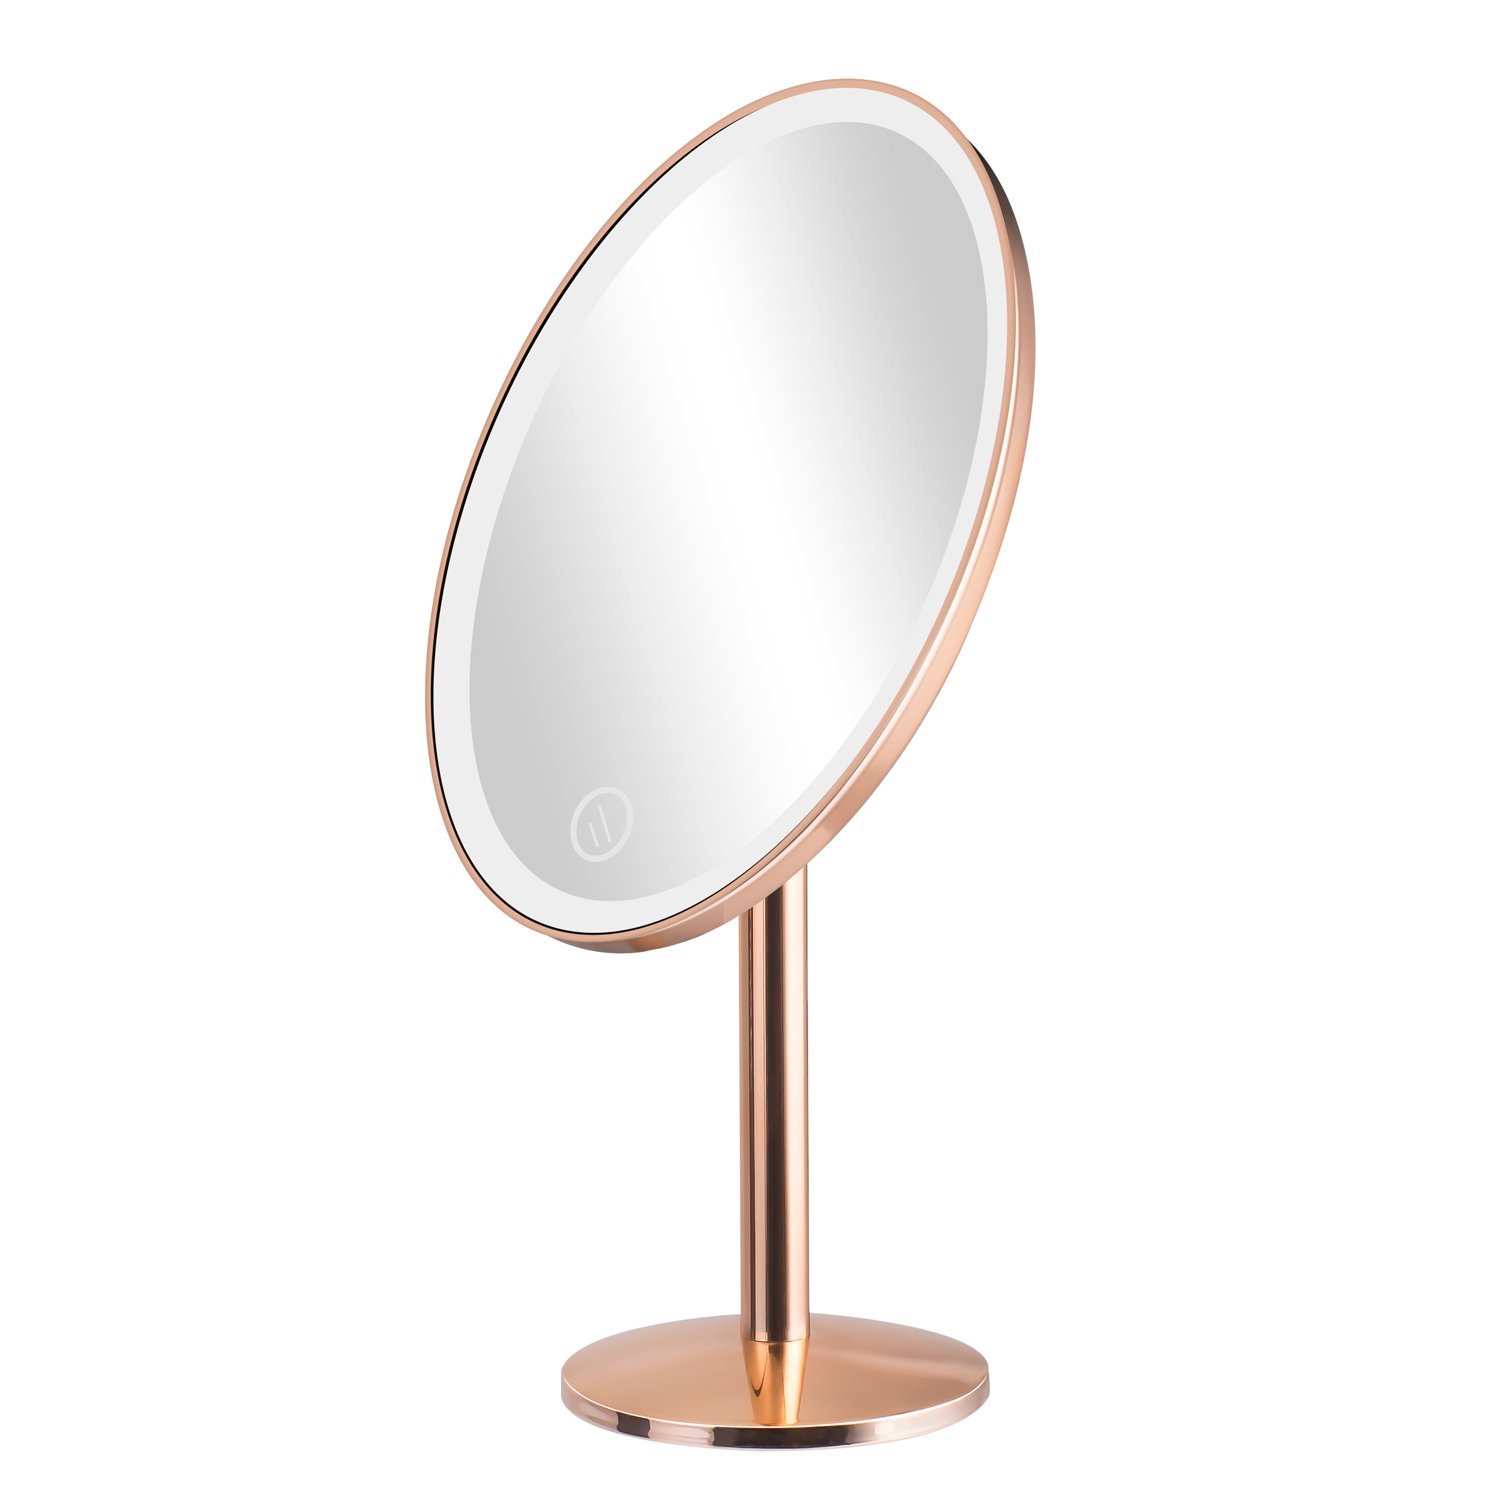 Elgood Lighted Vanity Makeup Mirror with 25 Led Lights touch Screen 180 degree free Rotation table Countertop for grils Women Men Cosmetic ltd